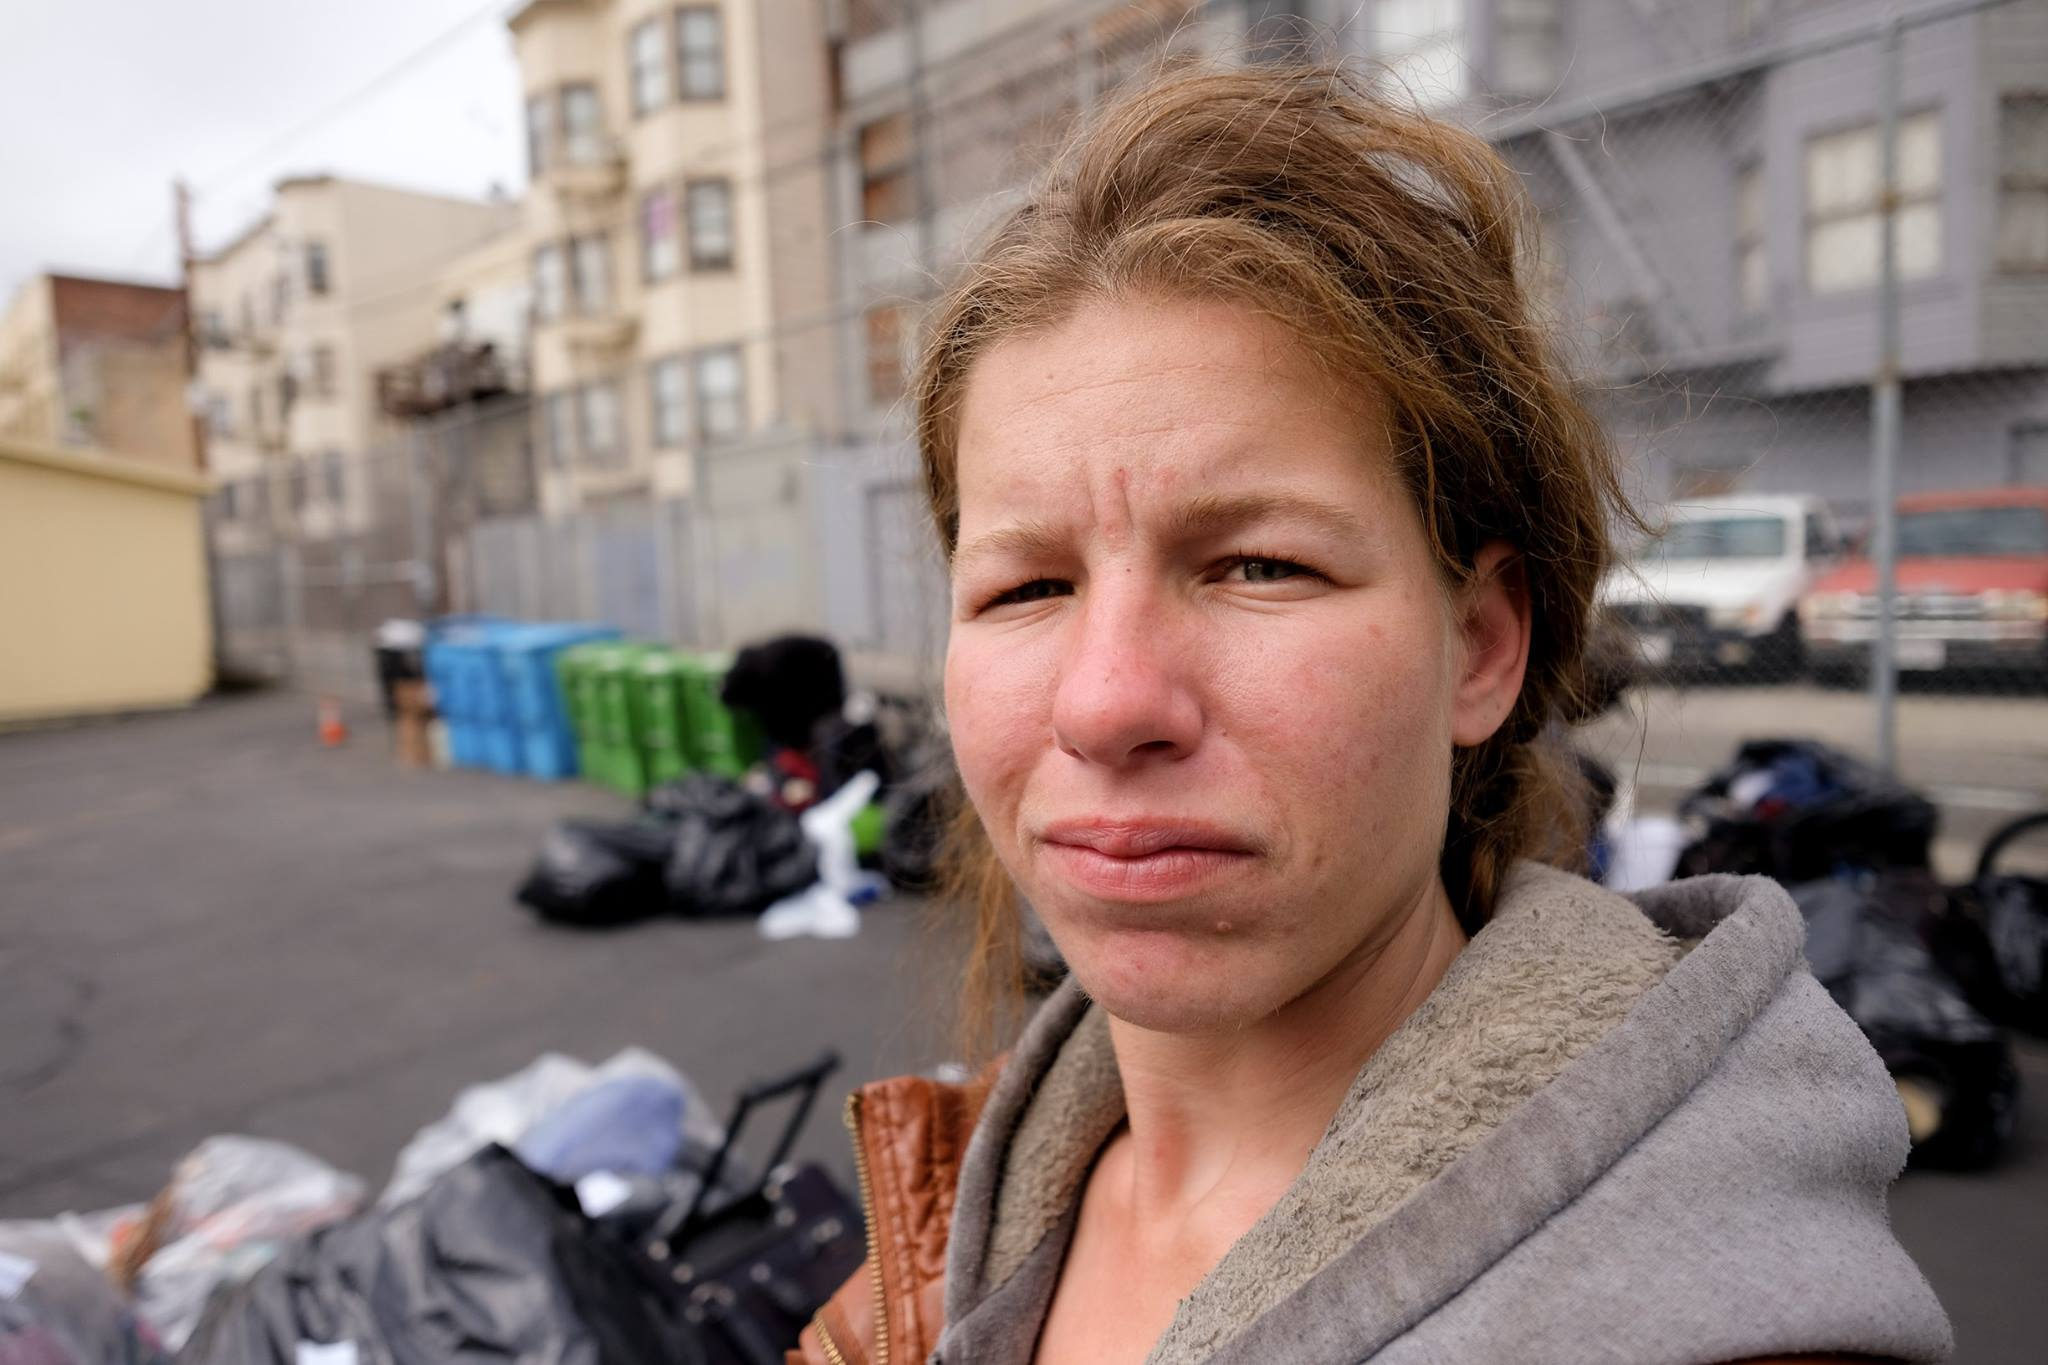 <div class='meta'><div class='origin-logo' data-origin='none'></div><span class='caption-text' data-credit='KGO-TV/Wayne Freedman'>A team from San Francisco's Navigation Center lulled Corry off the streets and helped get her the services she needed.</span></div>